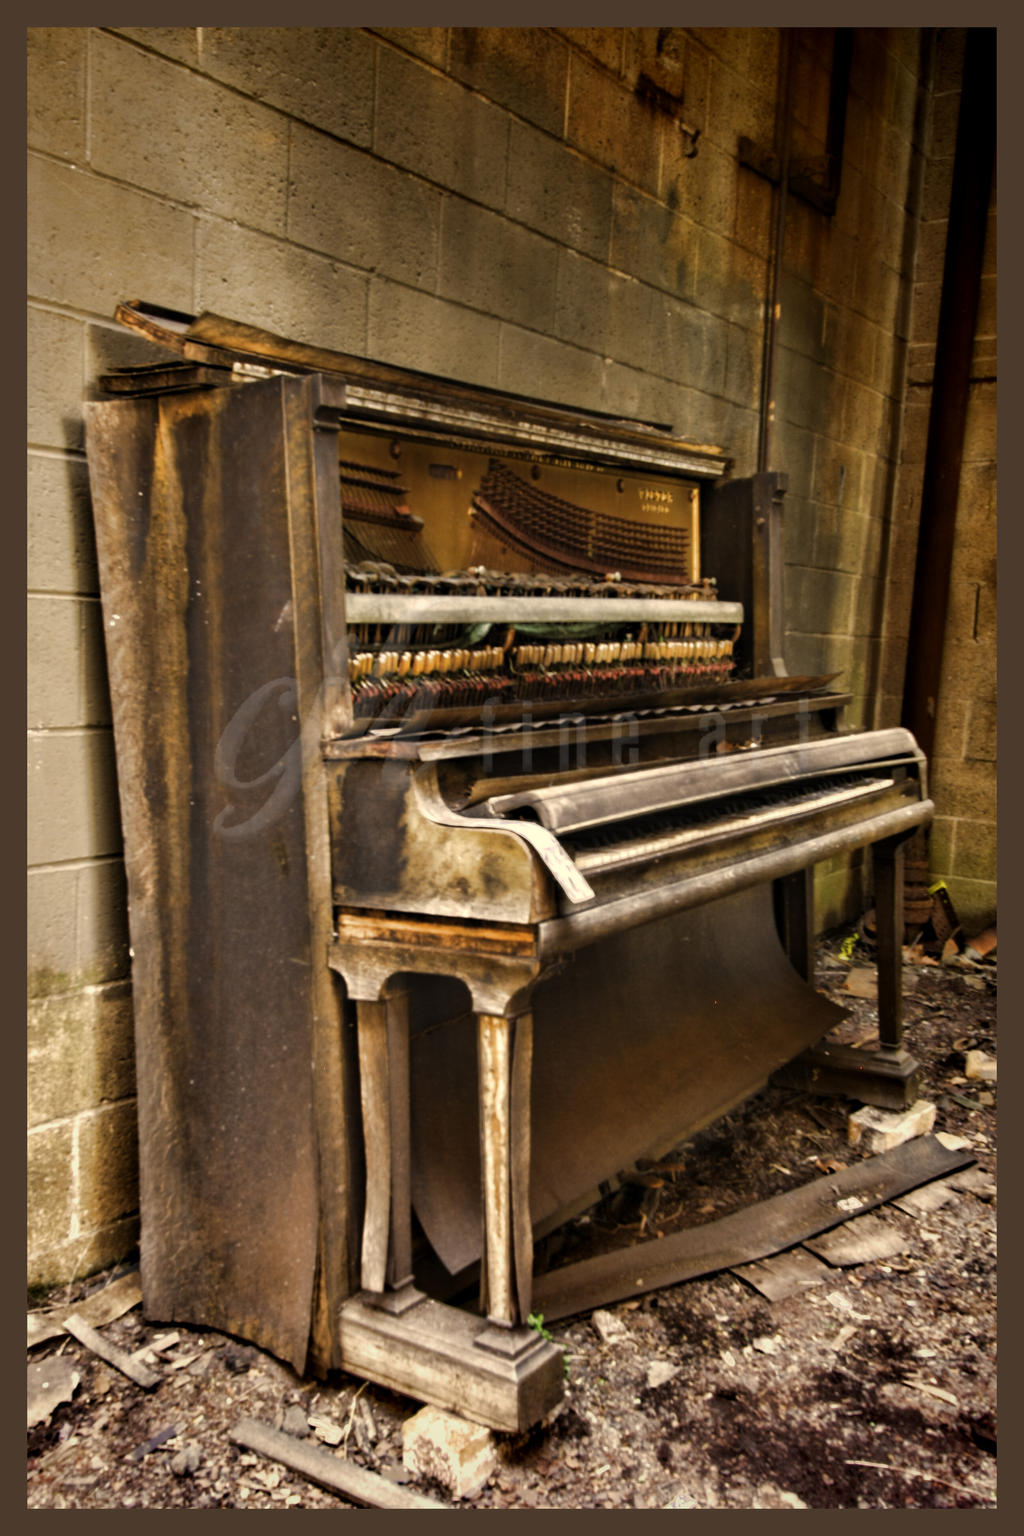 Abandoned Furnace - Piano by cjheery